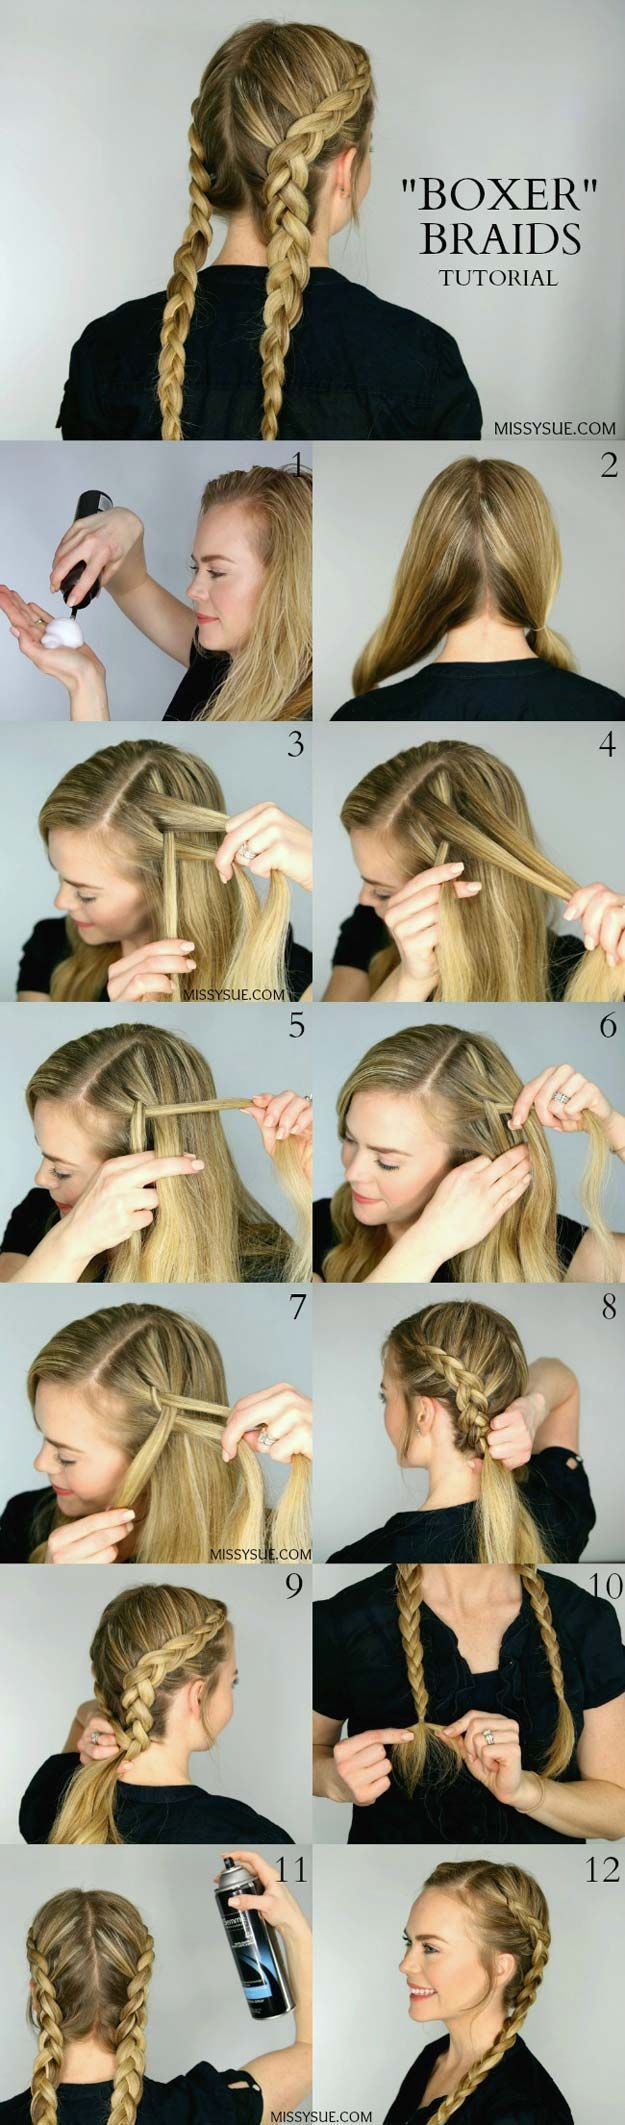 Festival Hair Tutorials – Two Dutch Braids – Quick Start Guide for